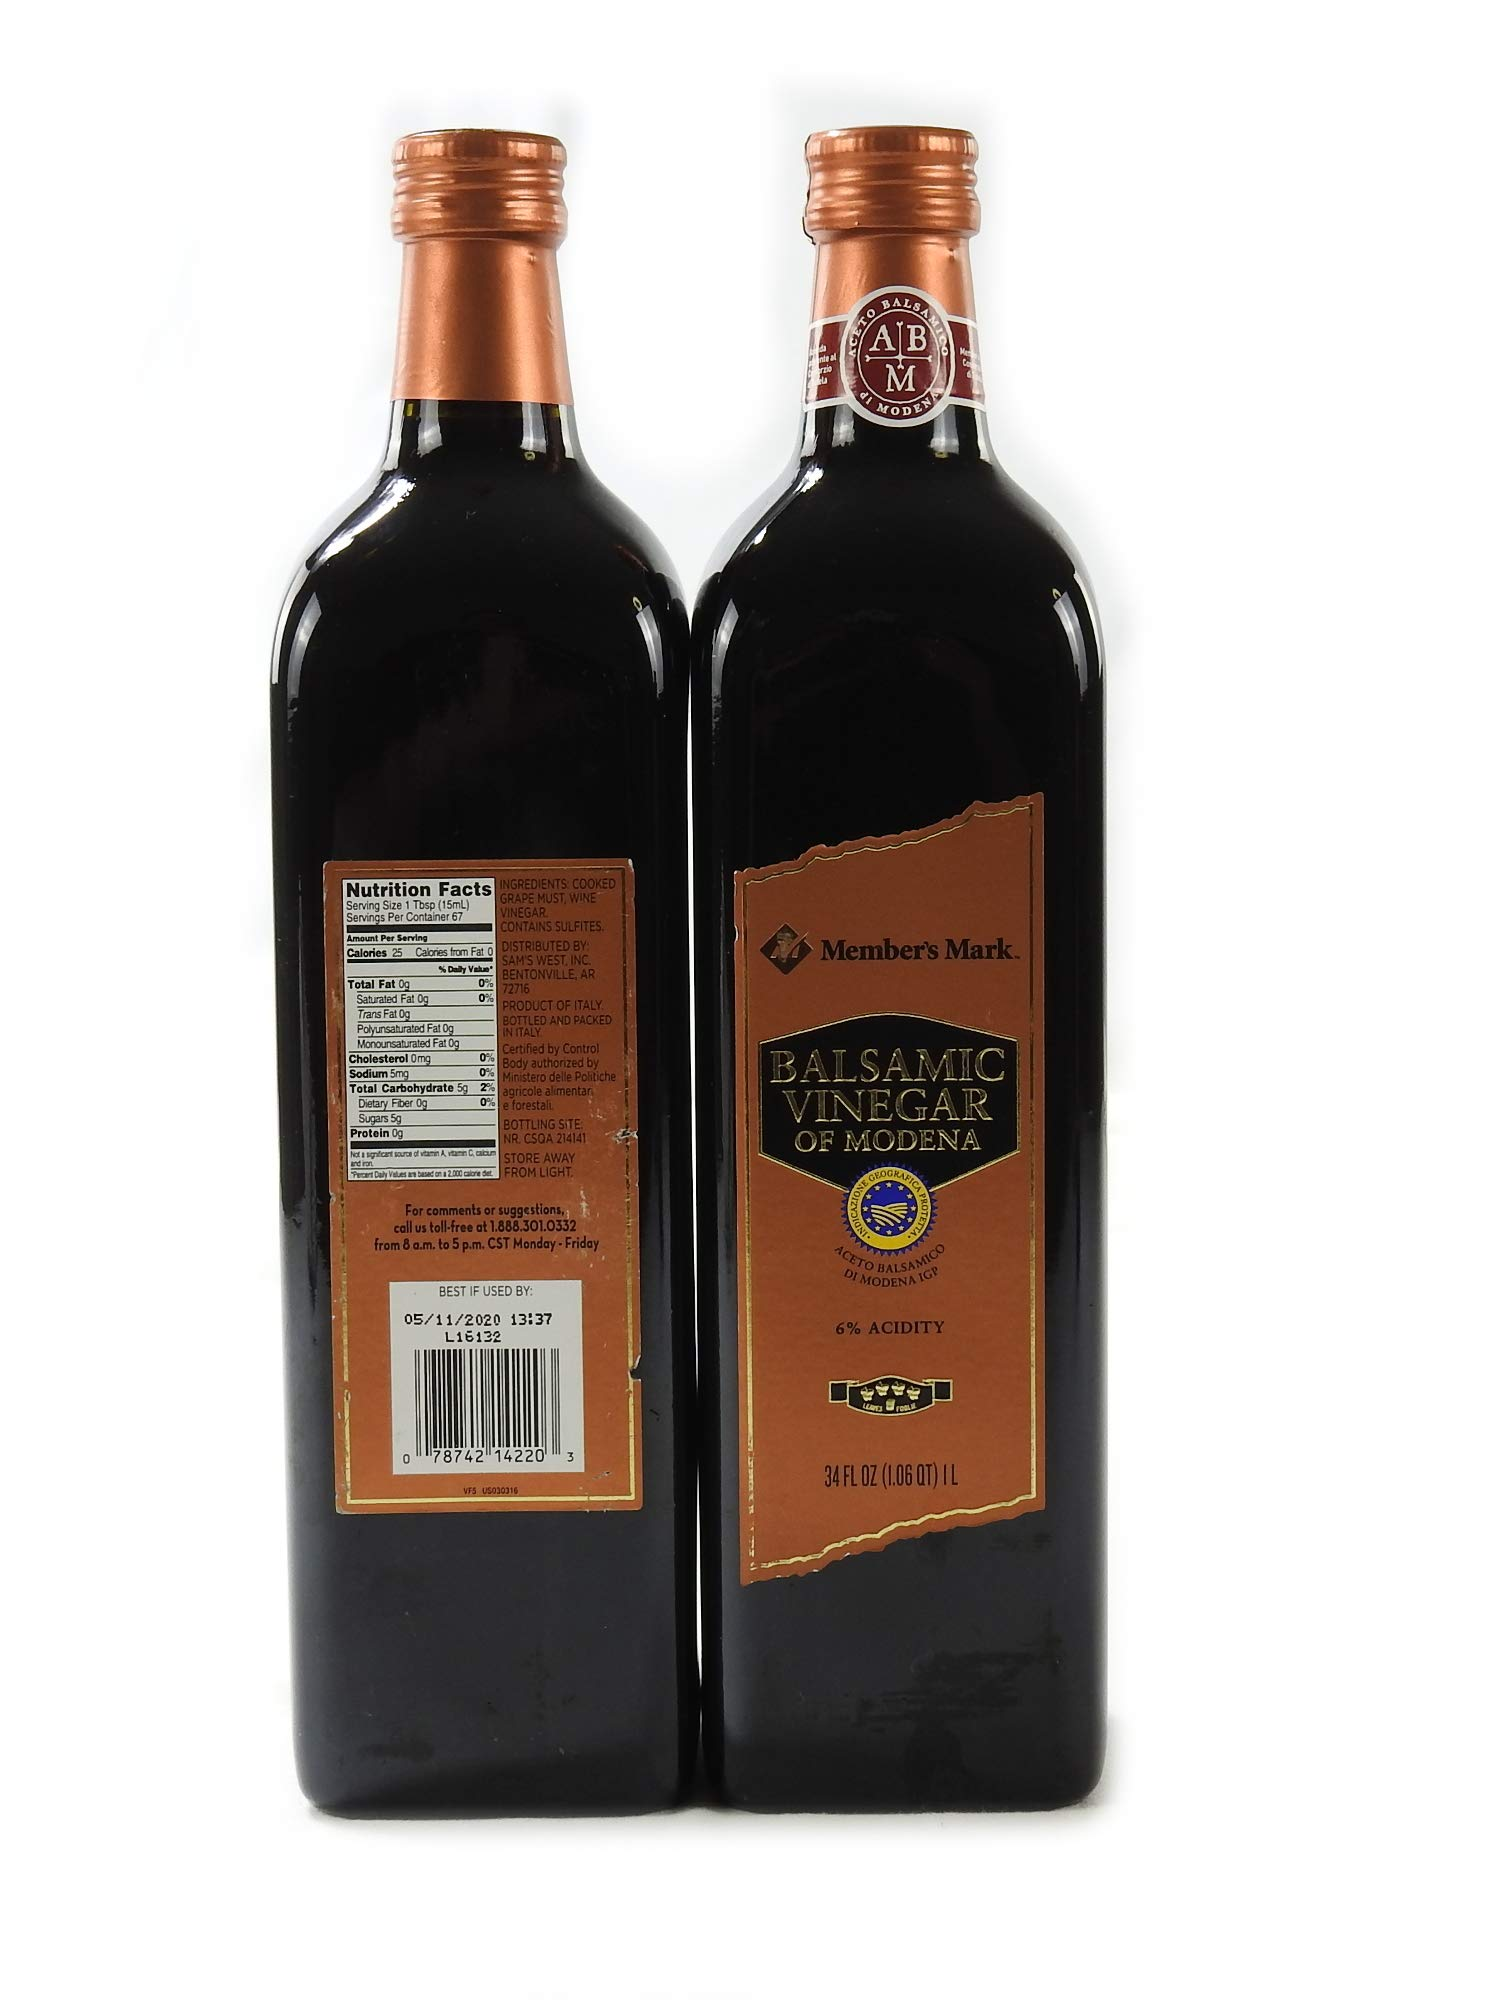 Member's Mark Balsamic Vinegar of Modena Bottle, (34 oz. 1L) - Pack of 4 2 Member's Mark Balsamic Vinegar of Modena Bottle Pack of 4 - Glass Bottles (Expiration 2020) Net Weight Per Bottle: 34 Fluid Ounces